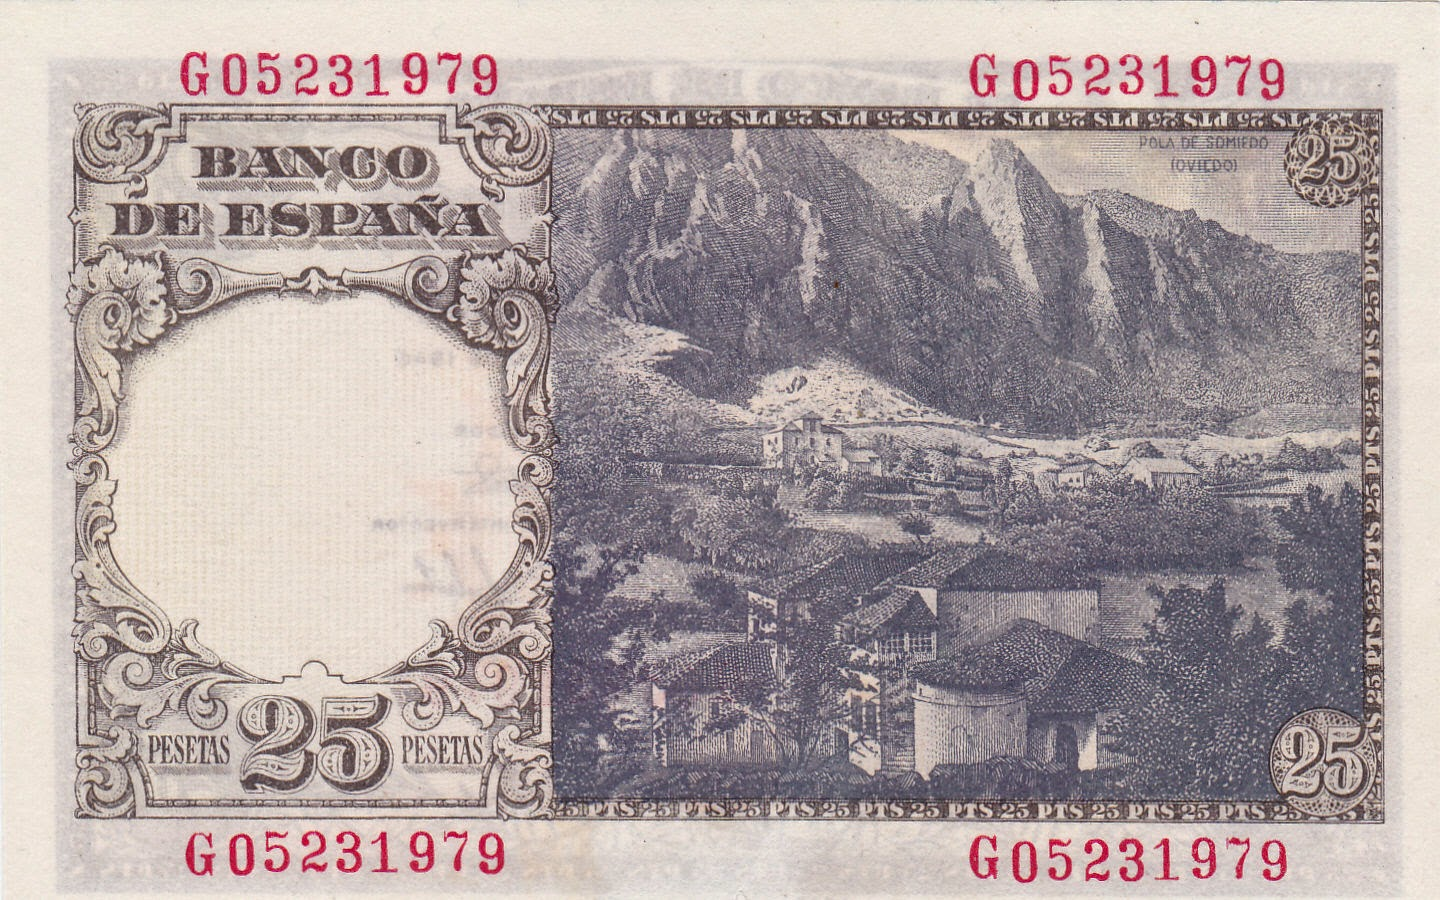 Spain money currency 25 Pesetas banknote 1946 Pola de Somiedo, Asturias